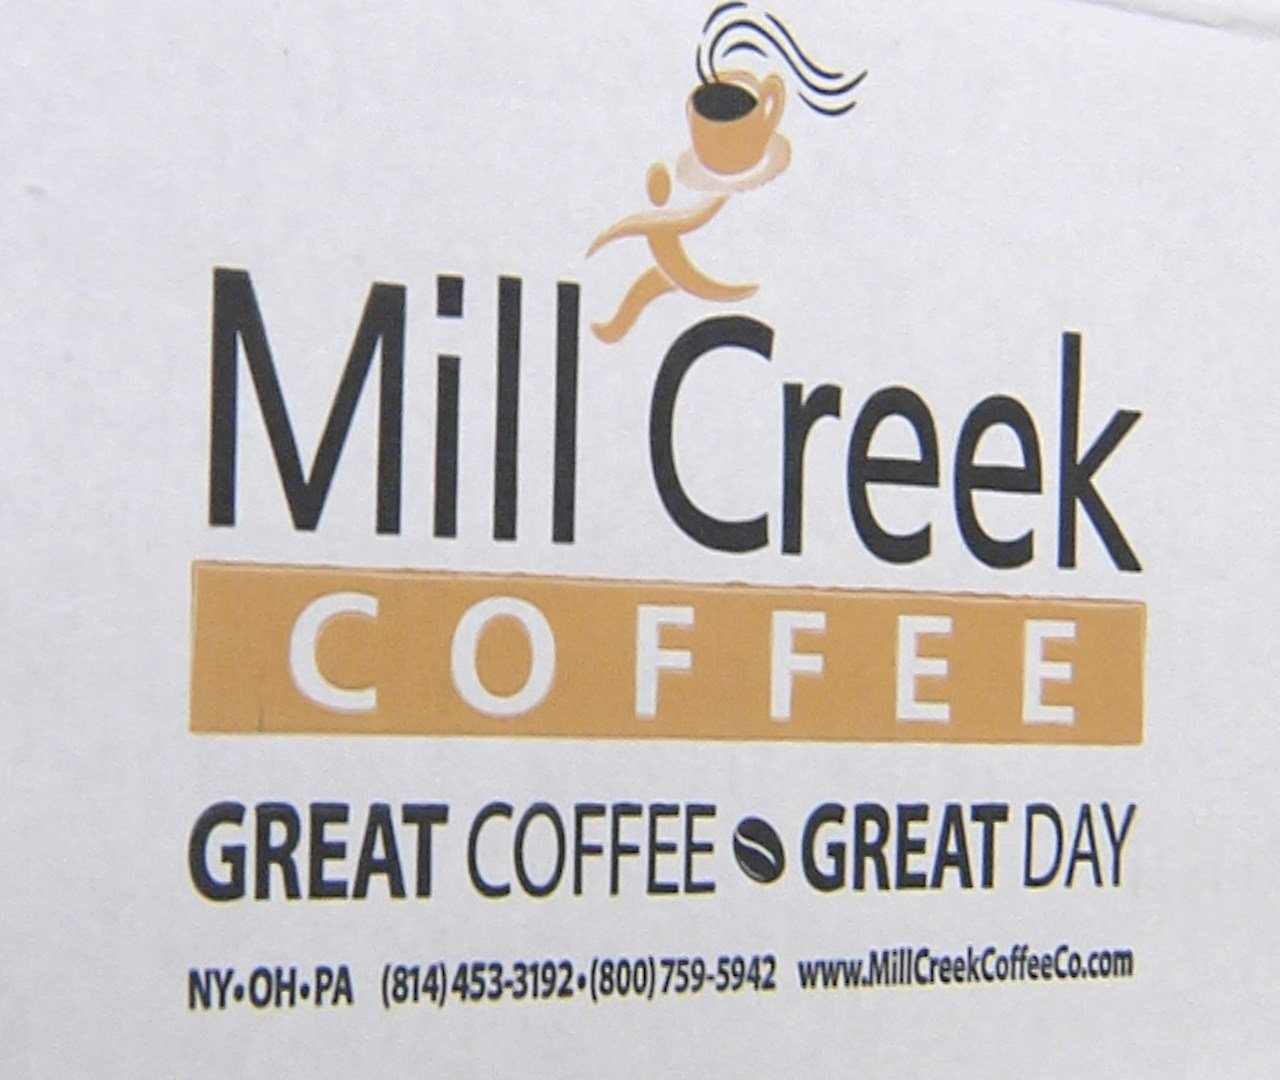 Millcreek  Coffee